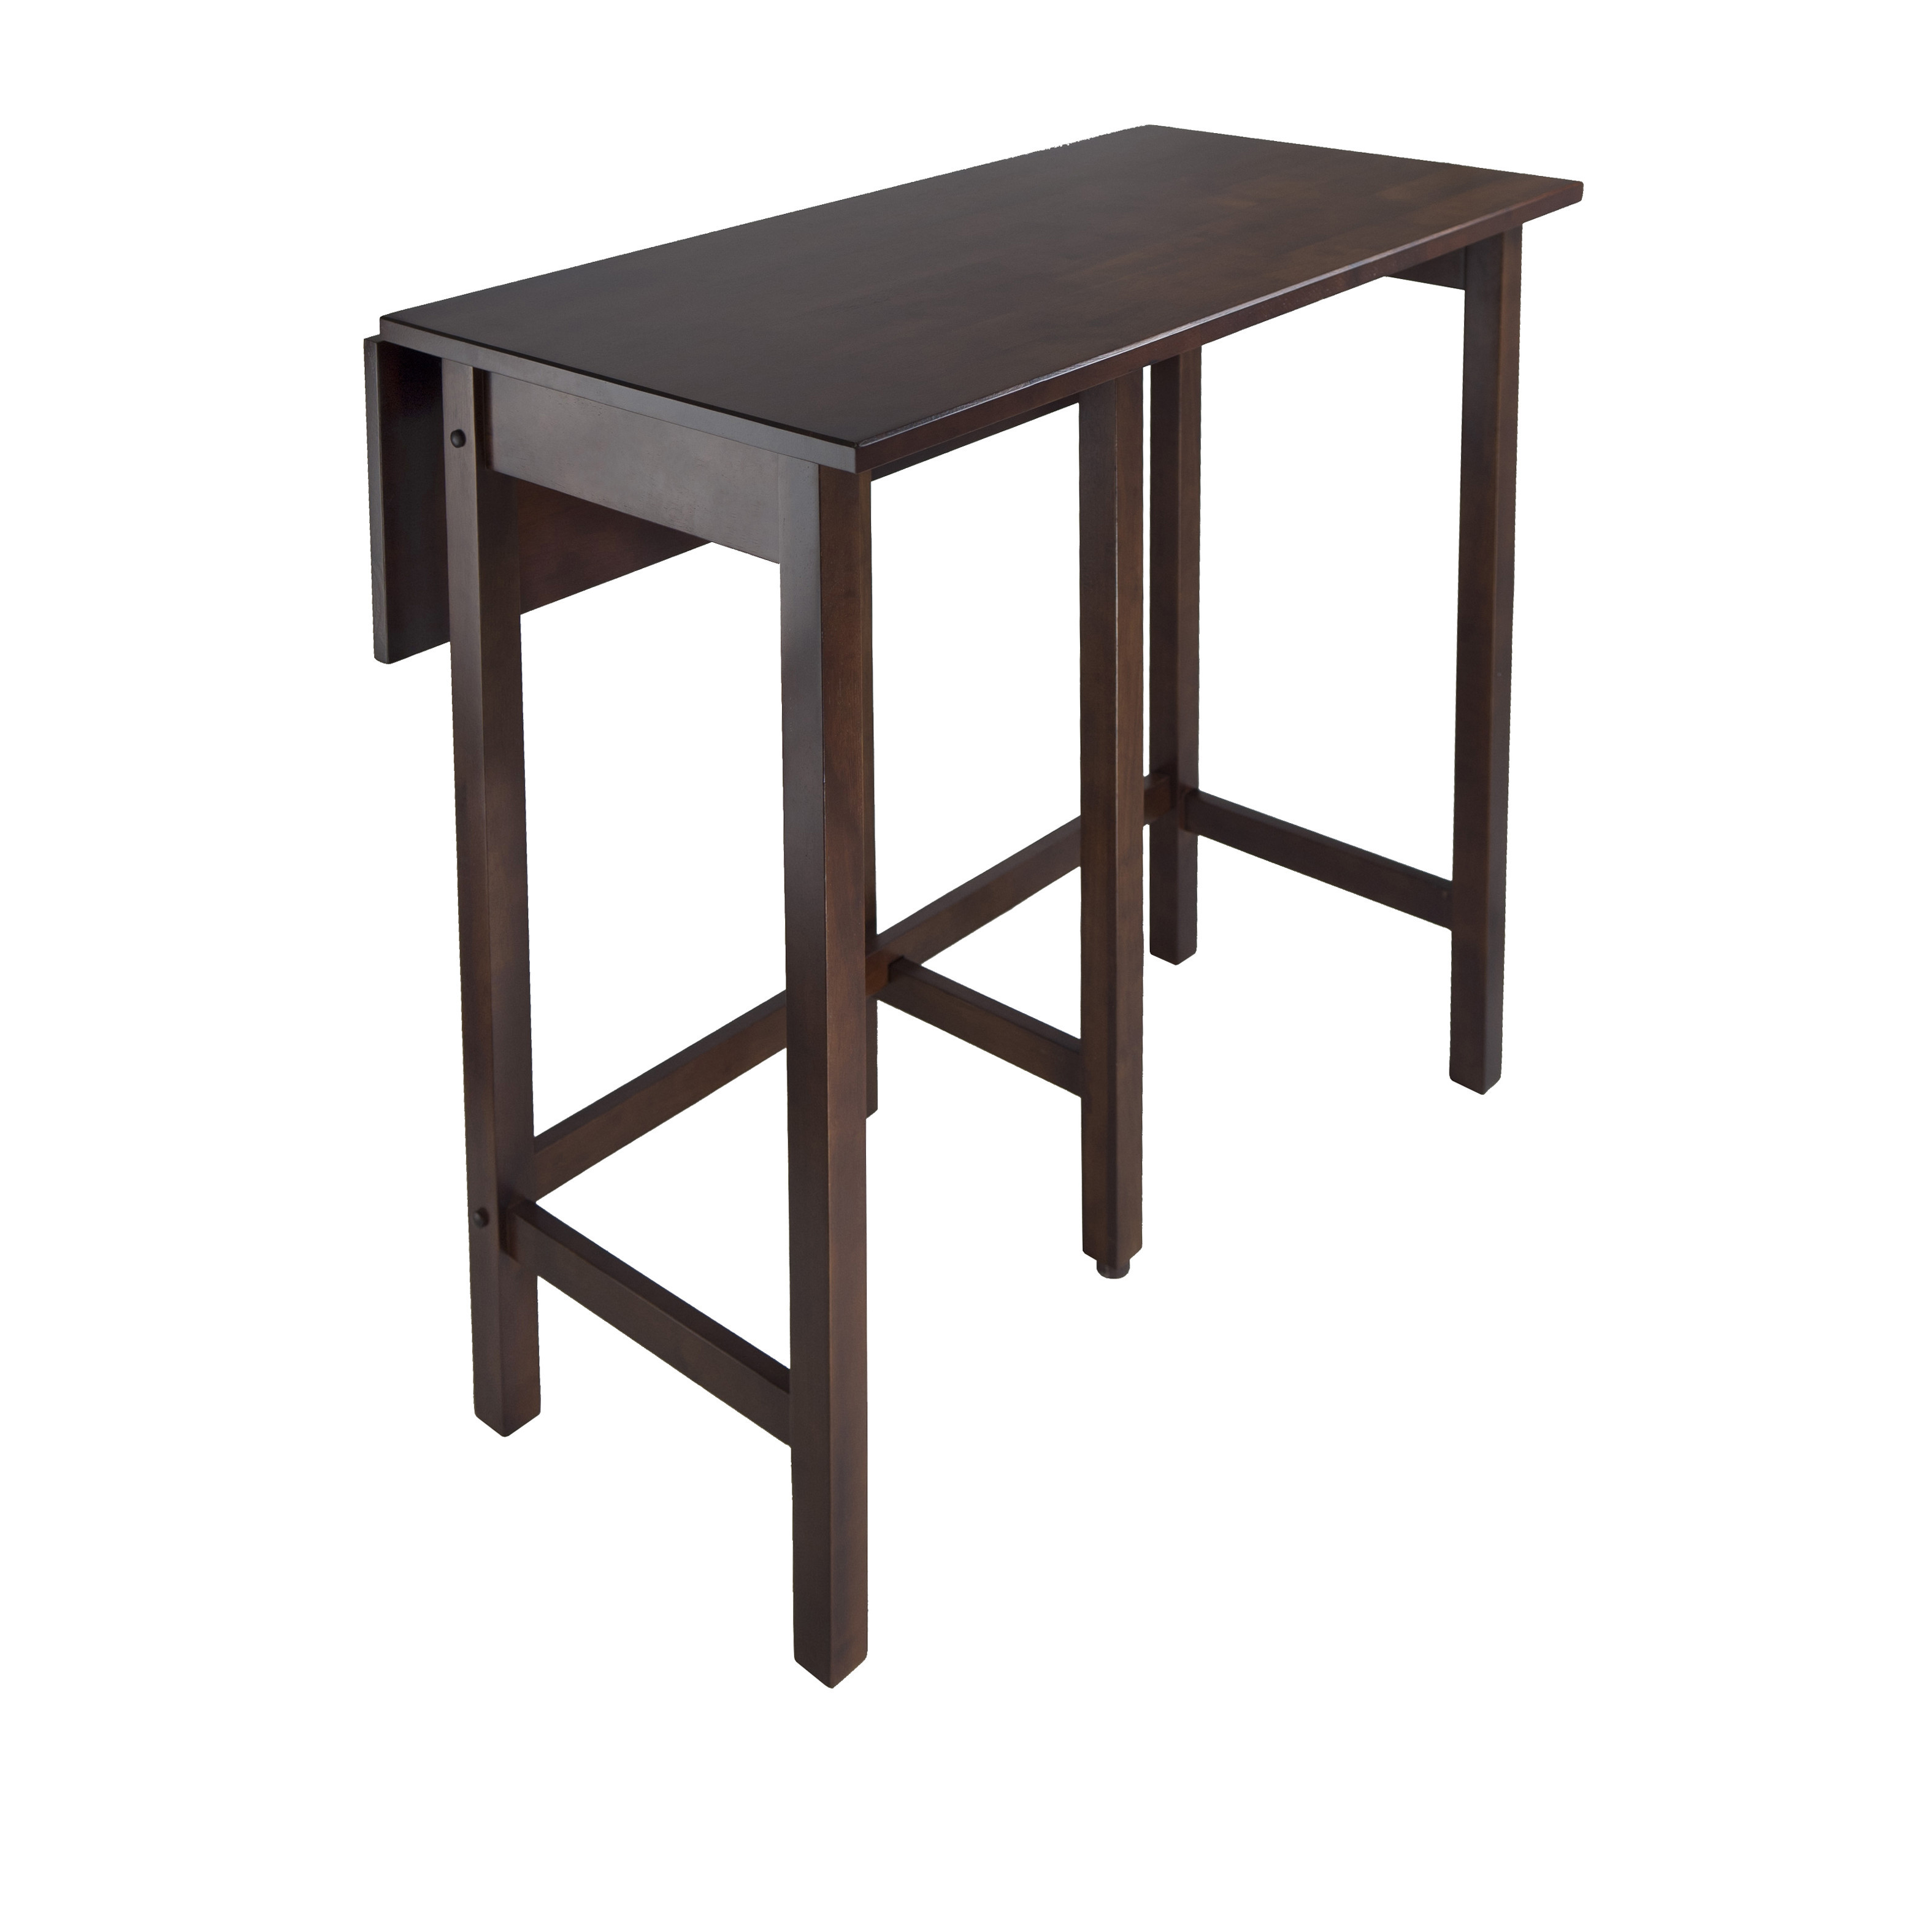 Best ideas about Dining Table Height . Save or Pin Winsome Lynnwood Counter Height Extendable Dining Table Now.